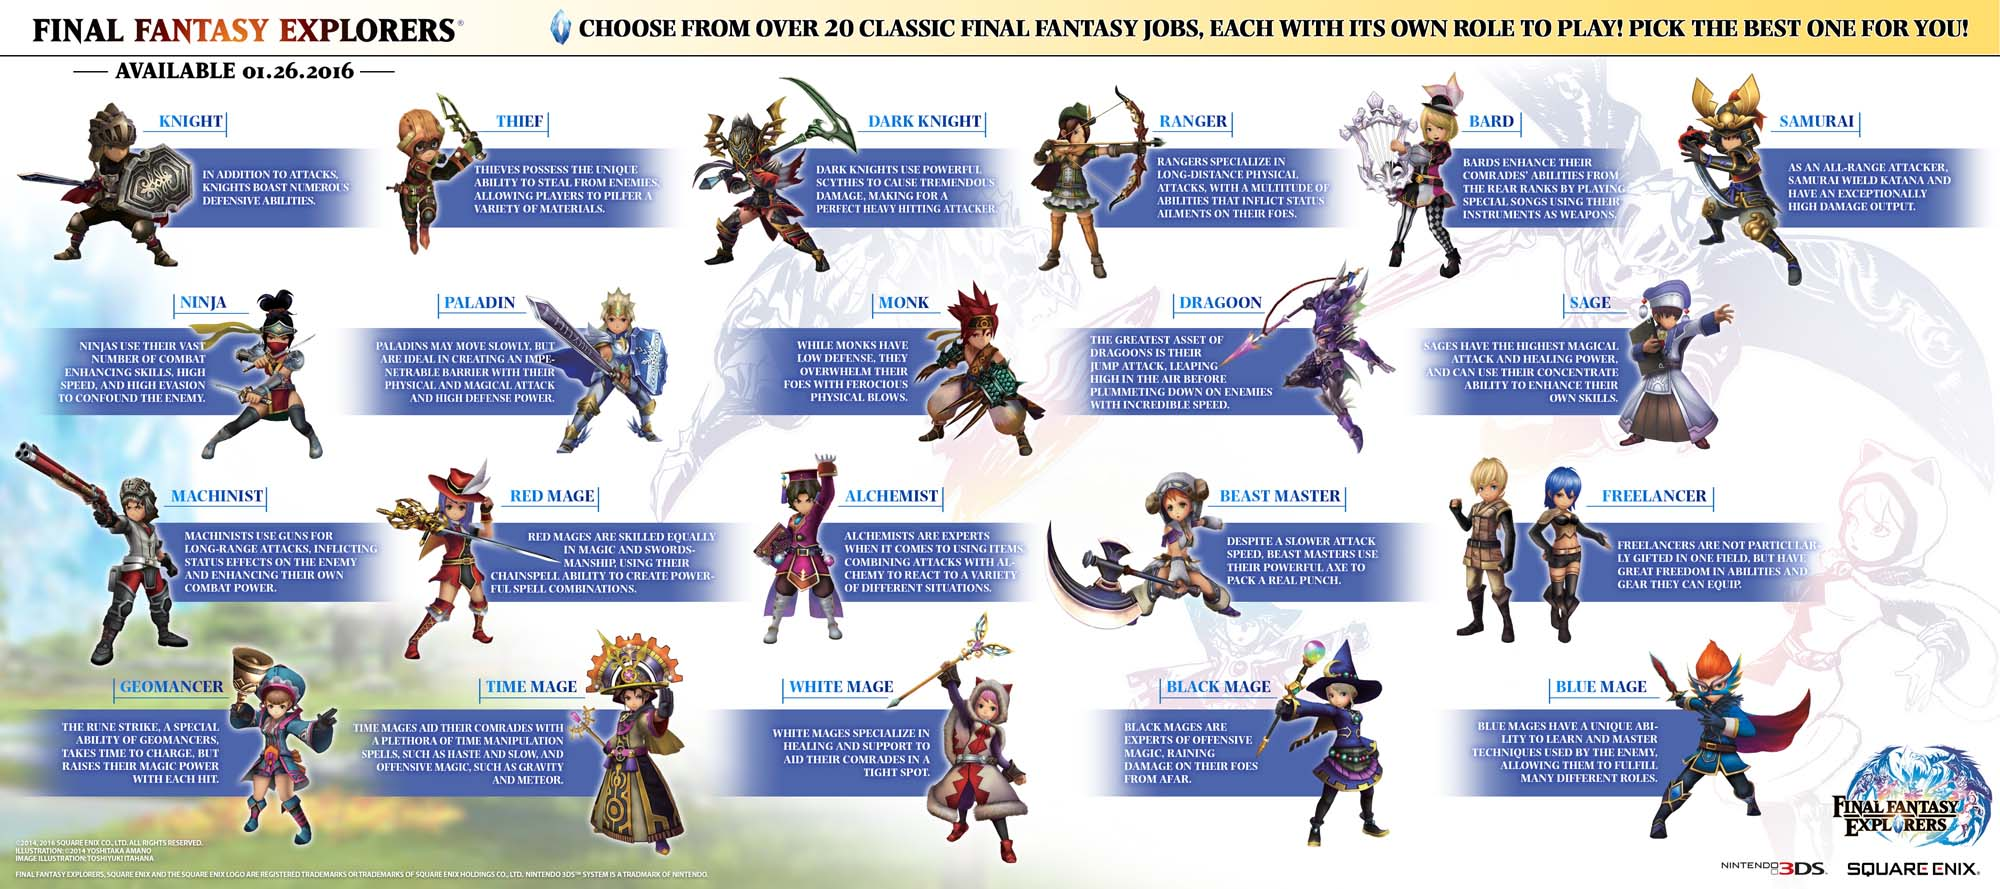 3DS Final Fantasy Explorers infographic